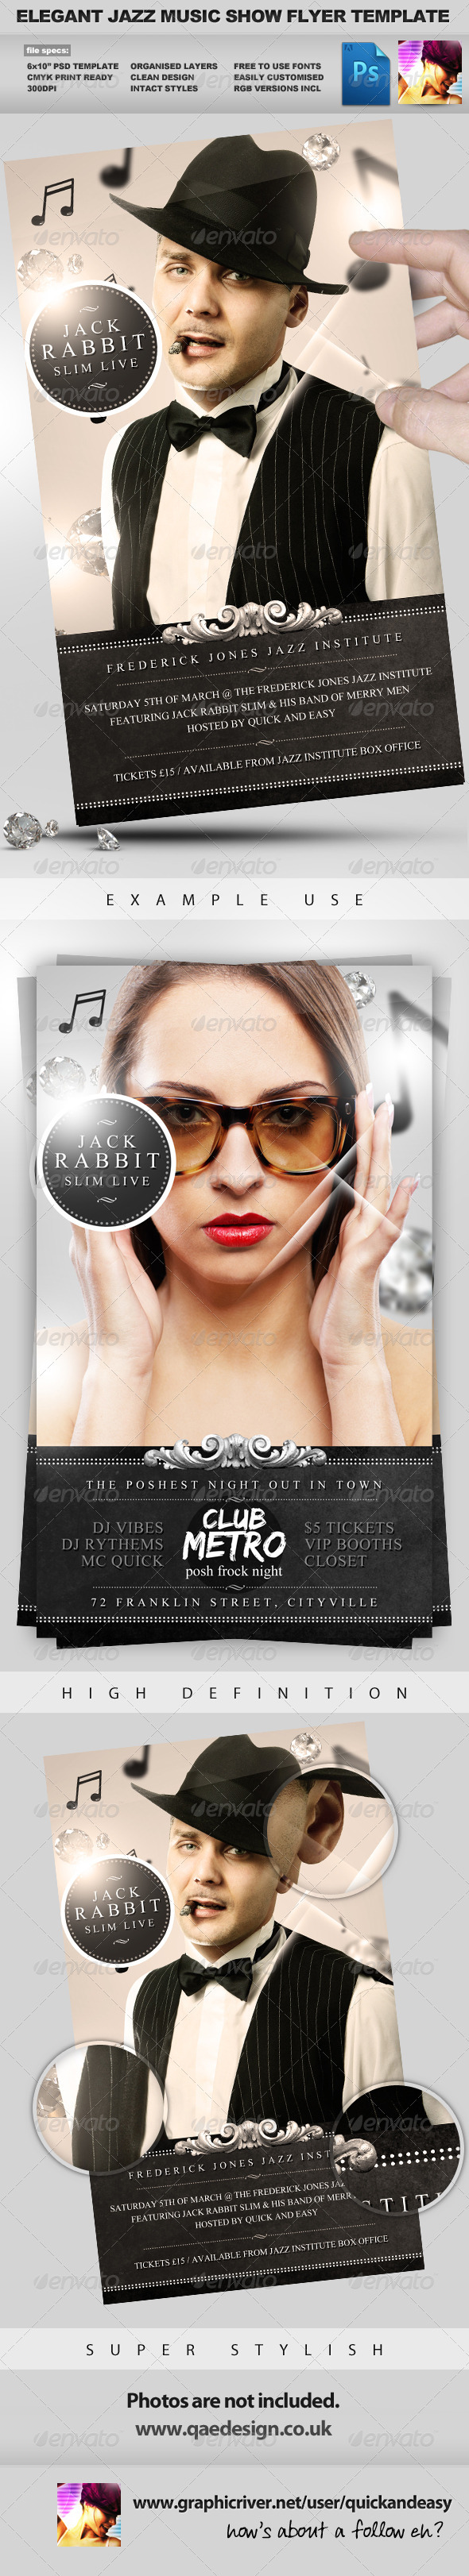 Jazz Music Event PSD Flyer Template - Clubs & Parties Events